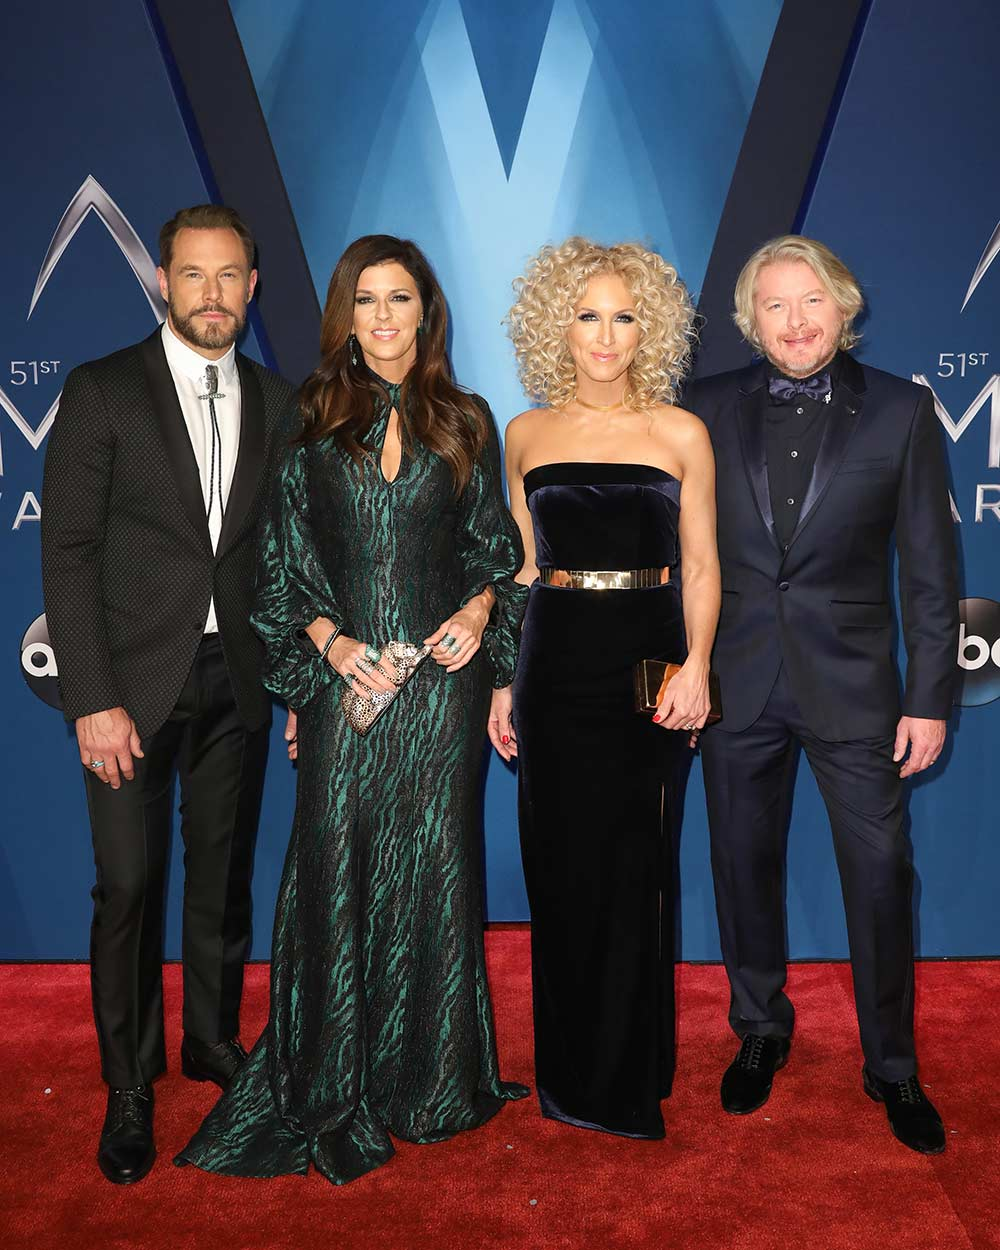 Cma awards red carpet photo gallery with carrie underwood for How many country music awards are there